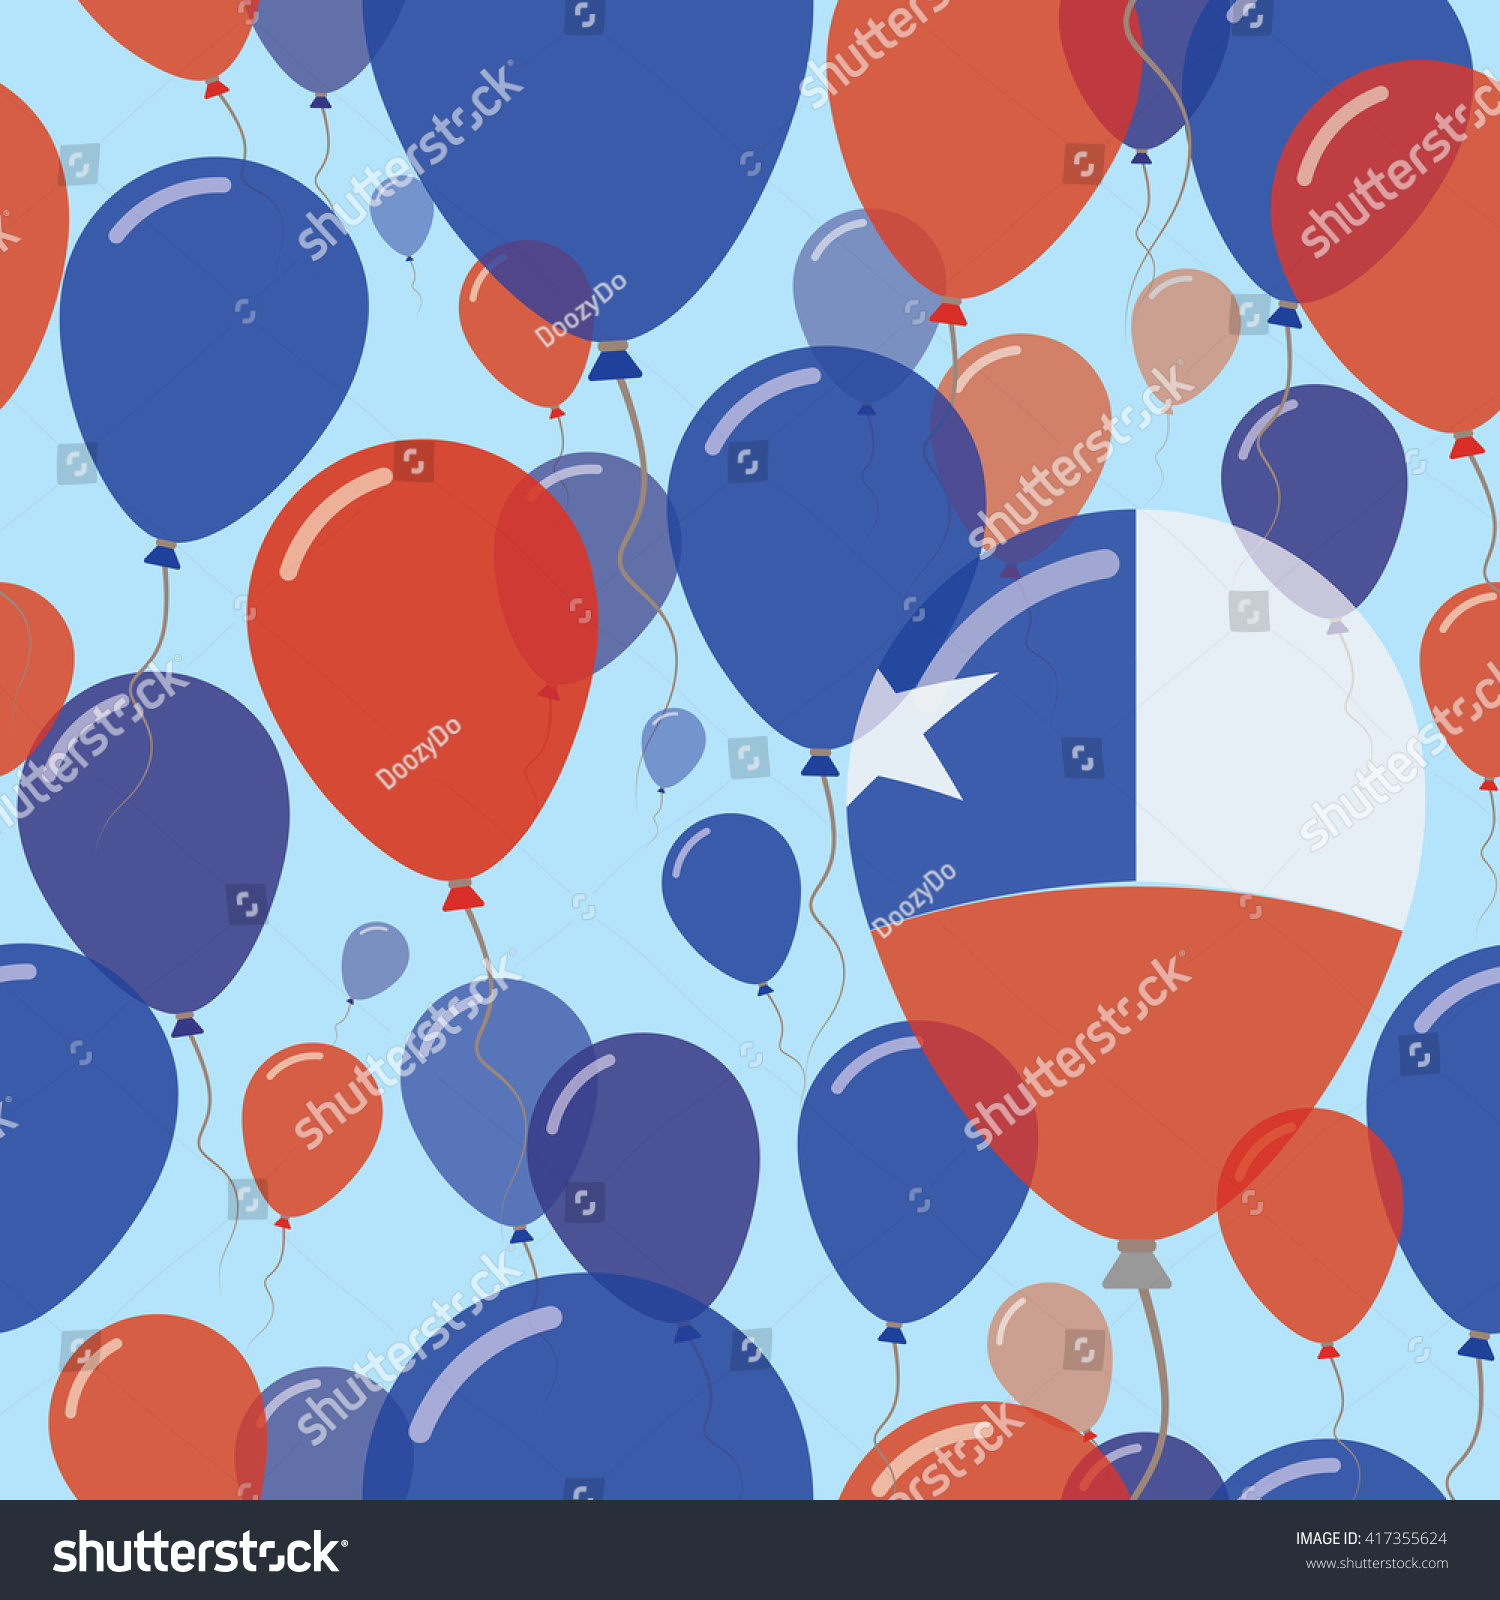 Chile national day flat seamless pattern stock vector 417355624 chile national day flat seamless pattern flying celebration balloons in colors of chilean flag biocorpaavc Images